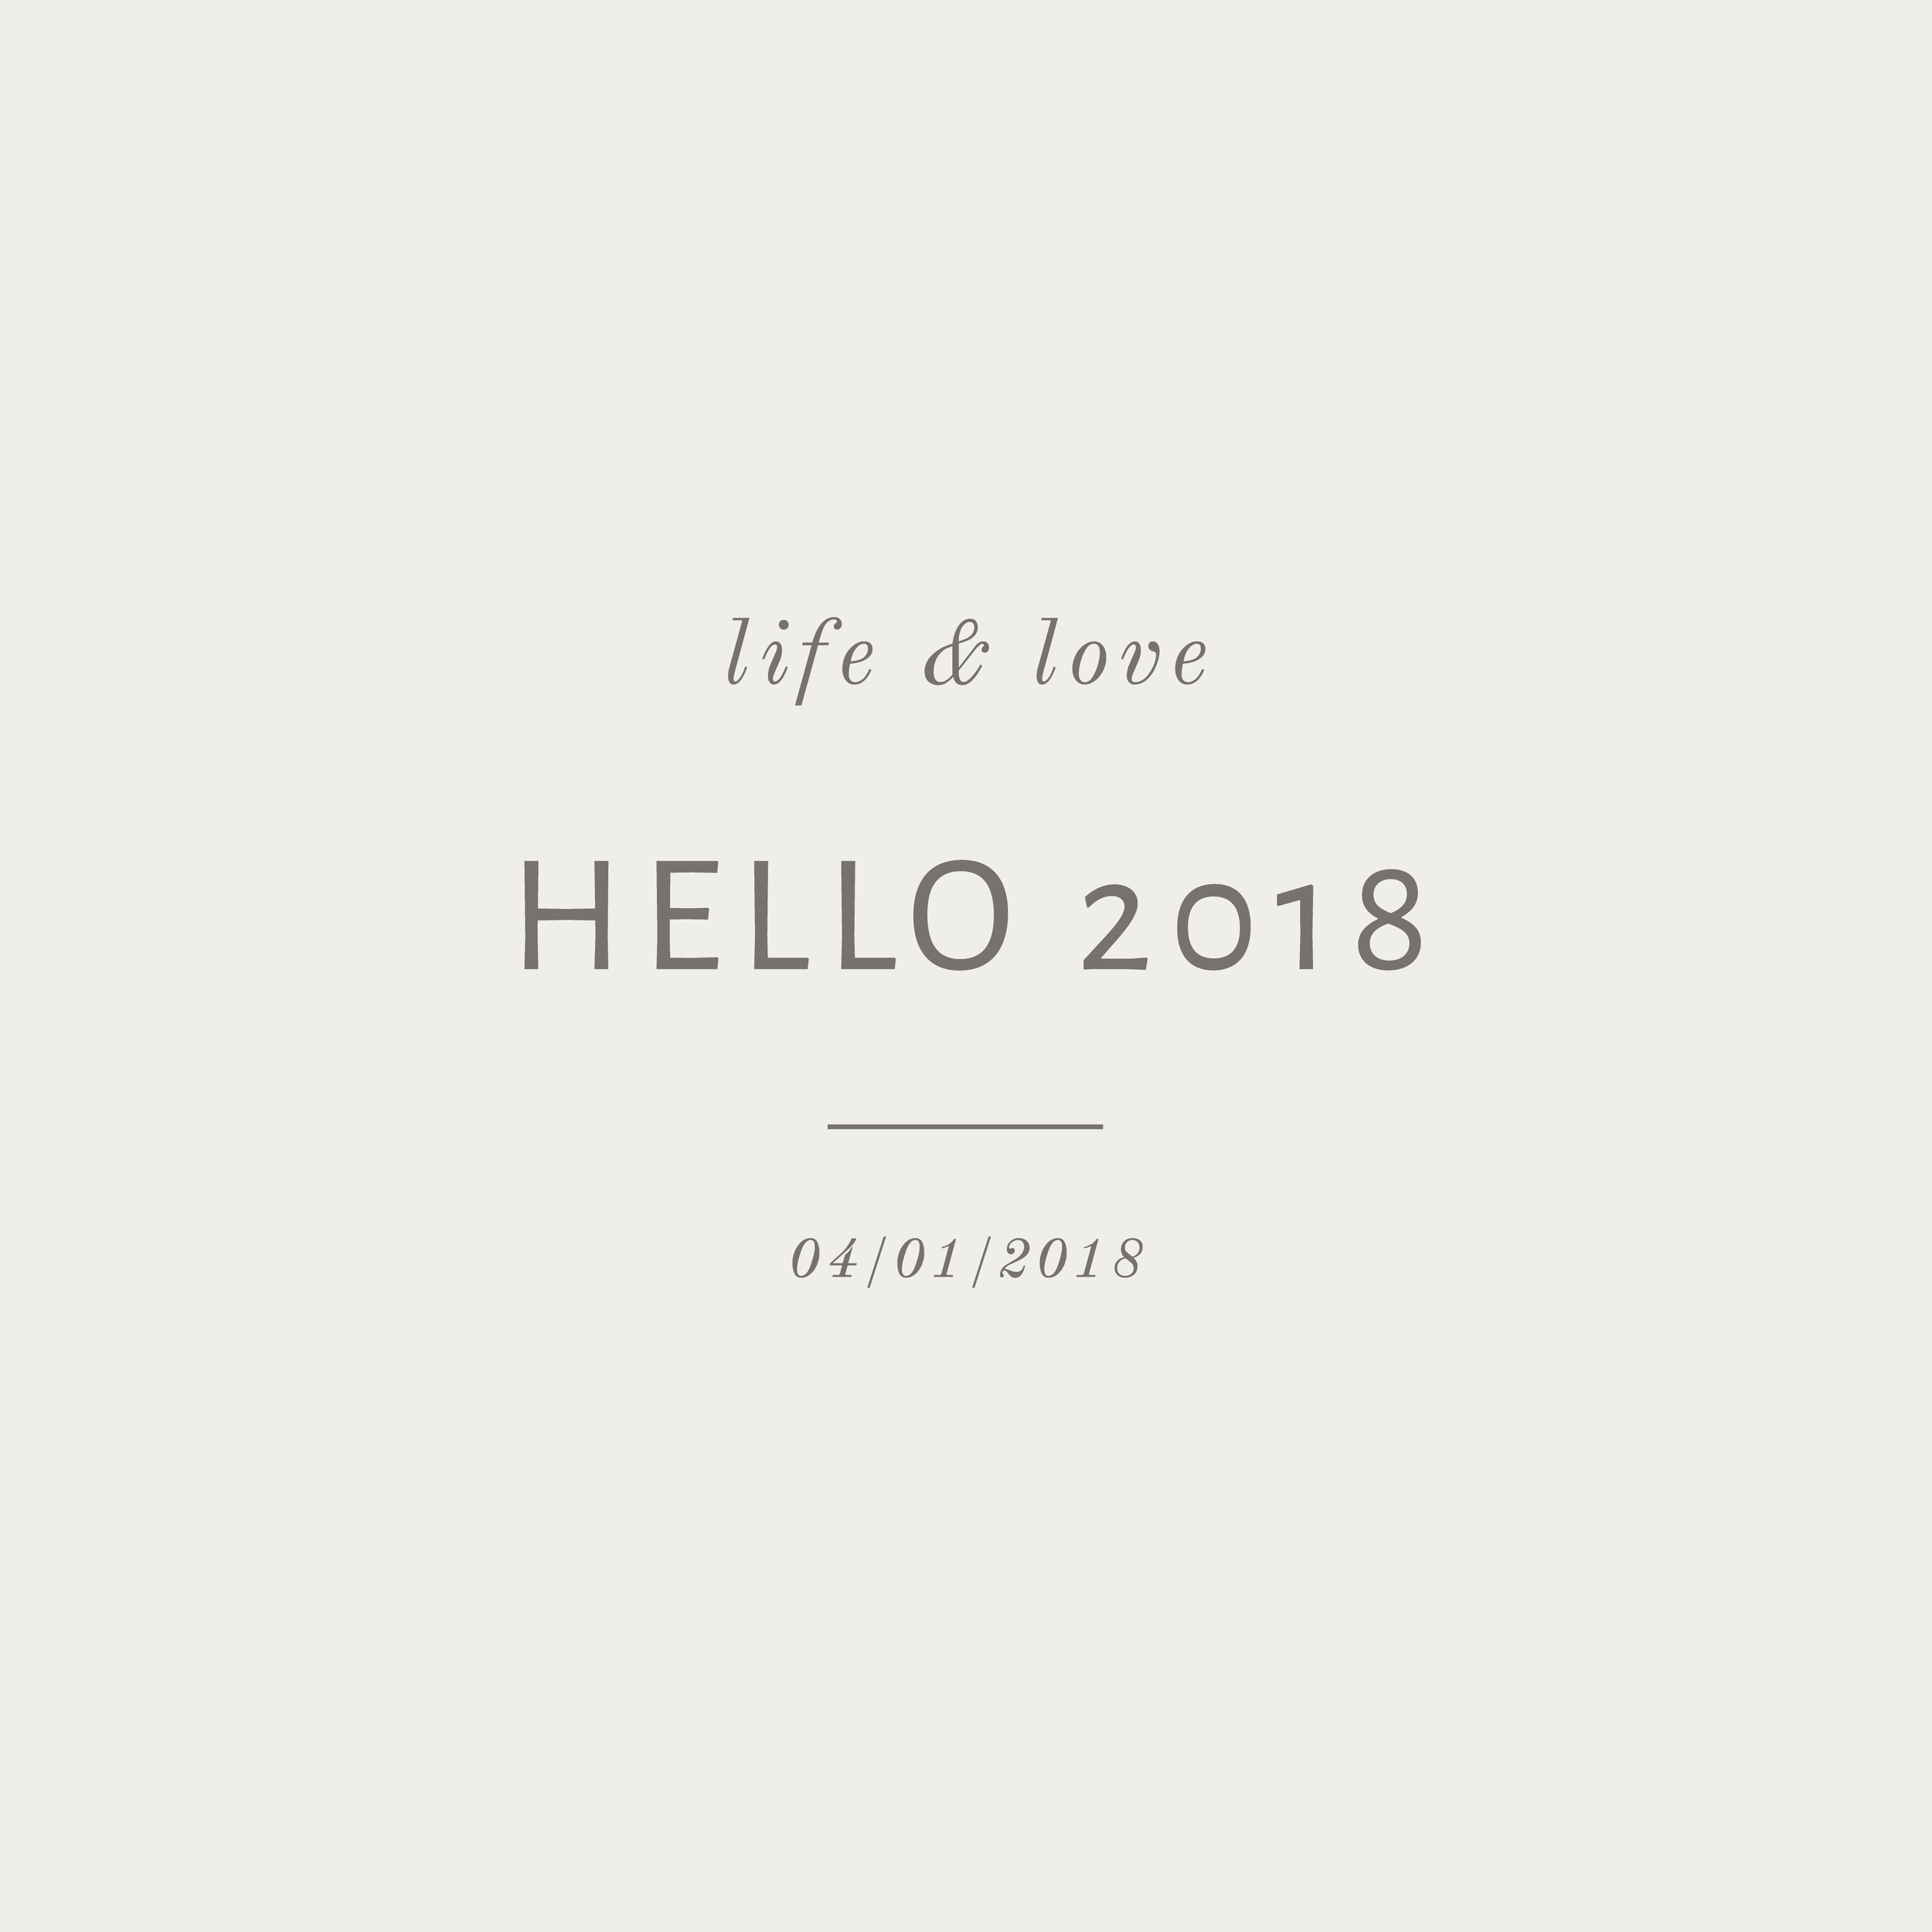 hello 2018.png